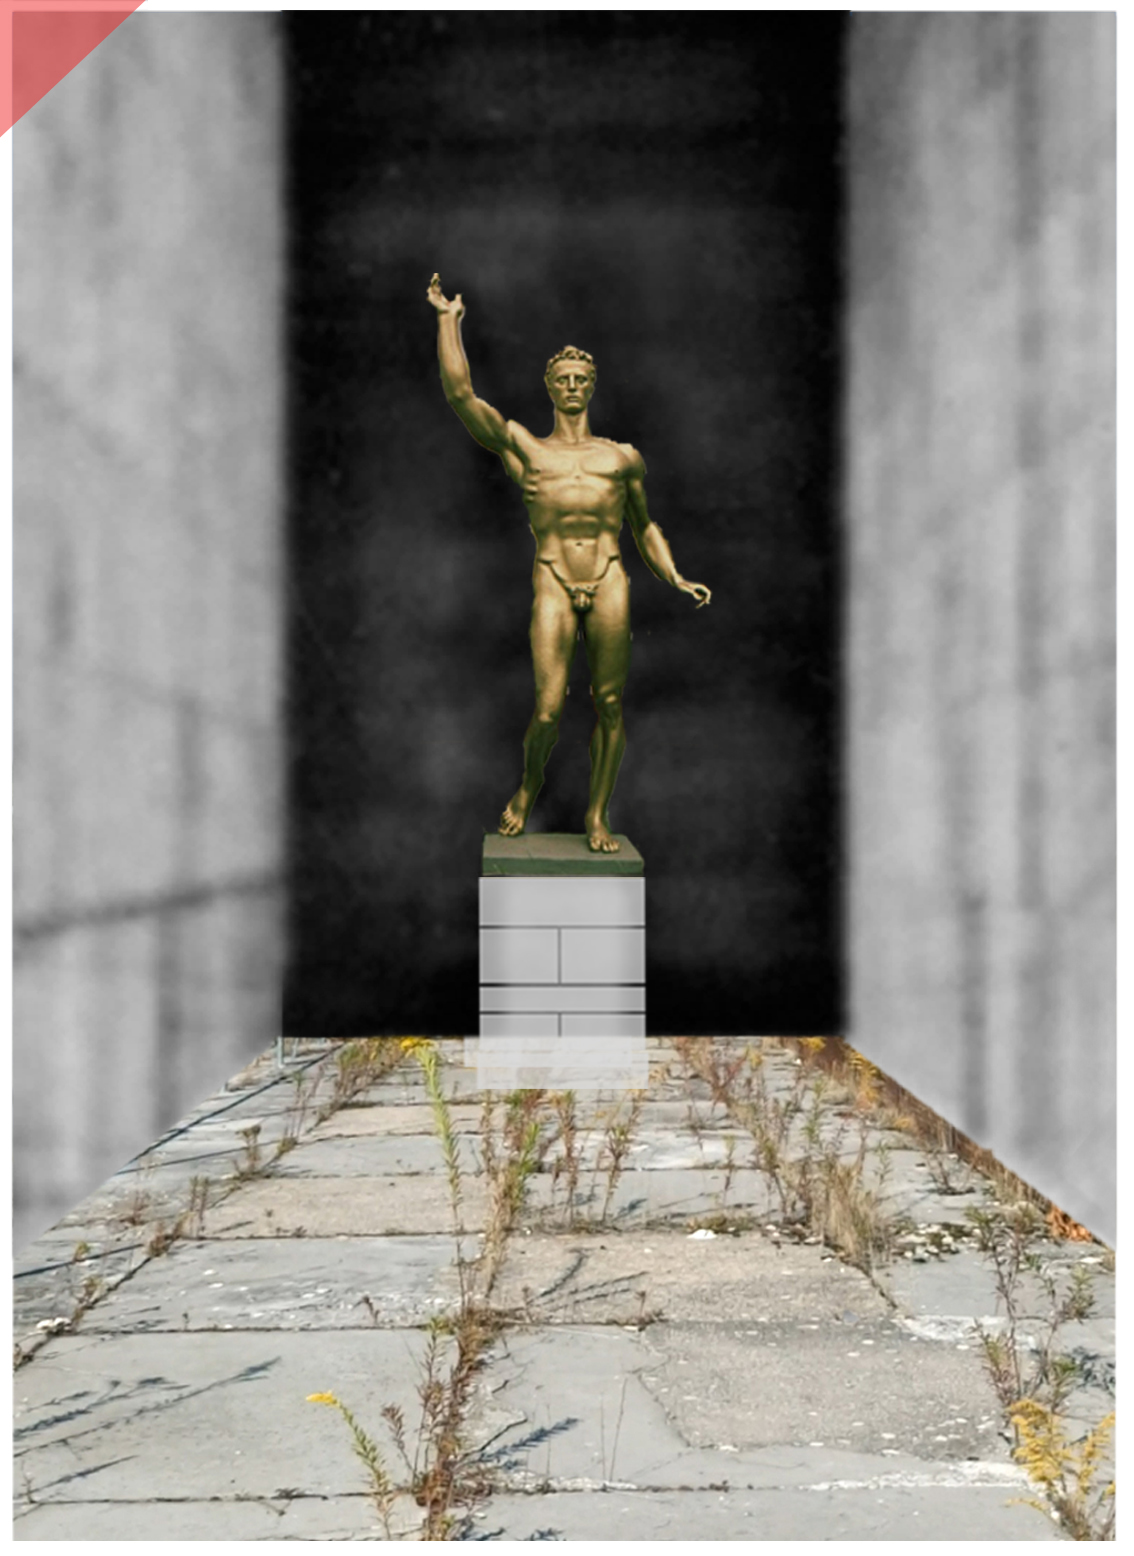 Zeppelin-field-grandstand-Nuremberg-sculptures-planned-golden-figurine-Arno-Breker-1939-Seer-Readieness